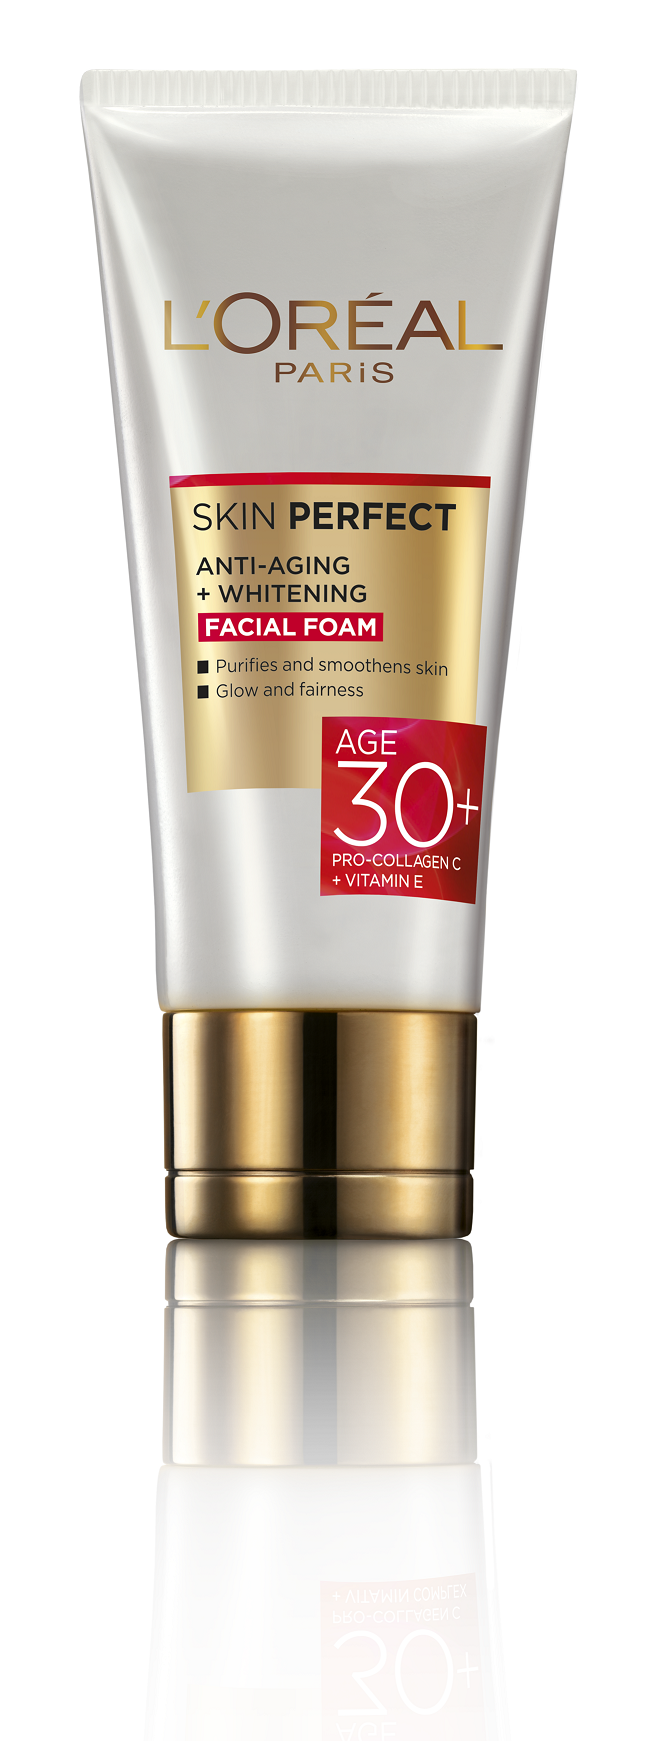 L'Oreal Paris Age 30+ Skin Perfect Facial Foam  available at Nykaa for Rs.135